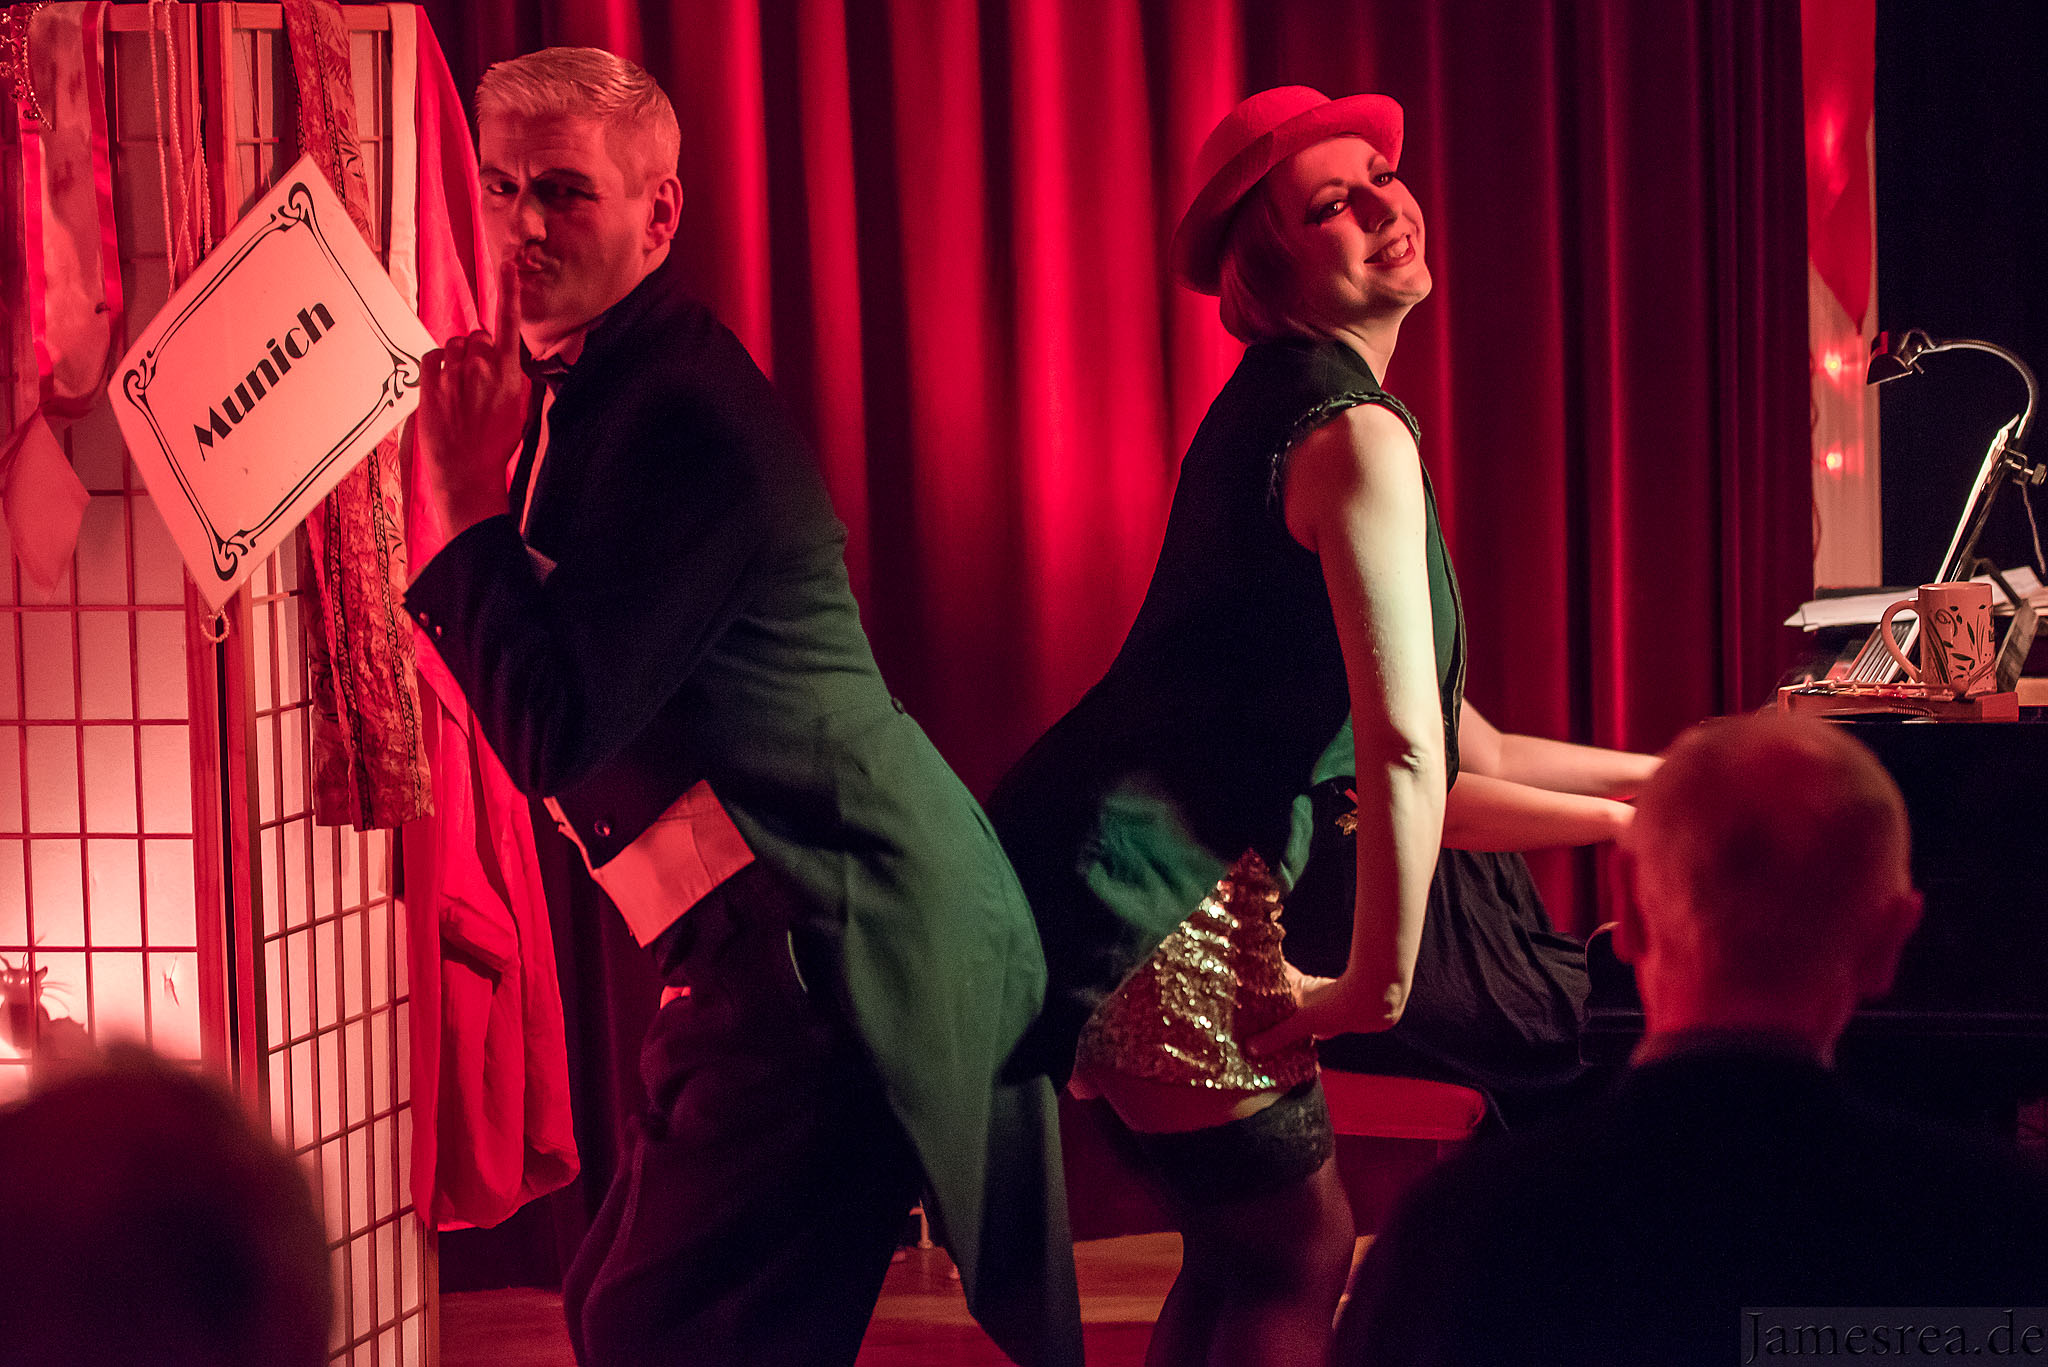 This photo was taken at A Cabaret Story at Sally Bowles Bar in Berlin.